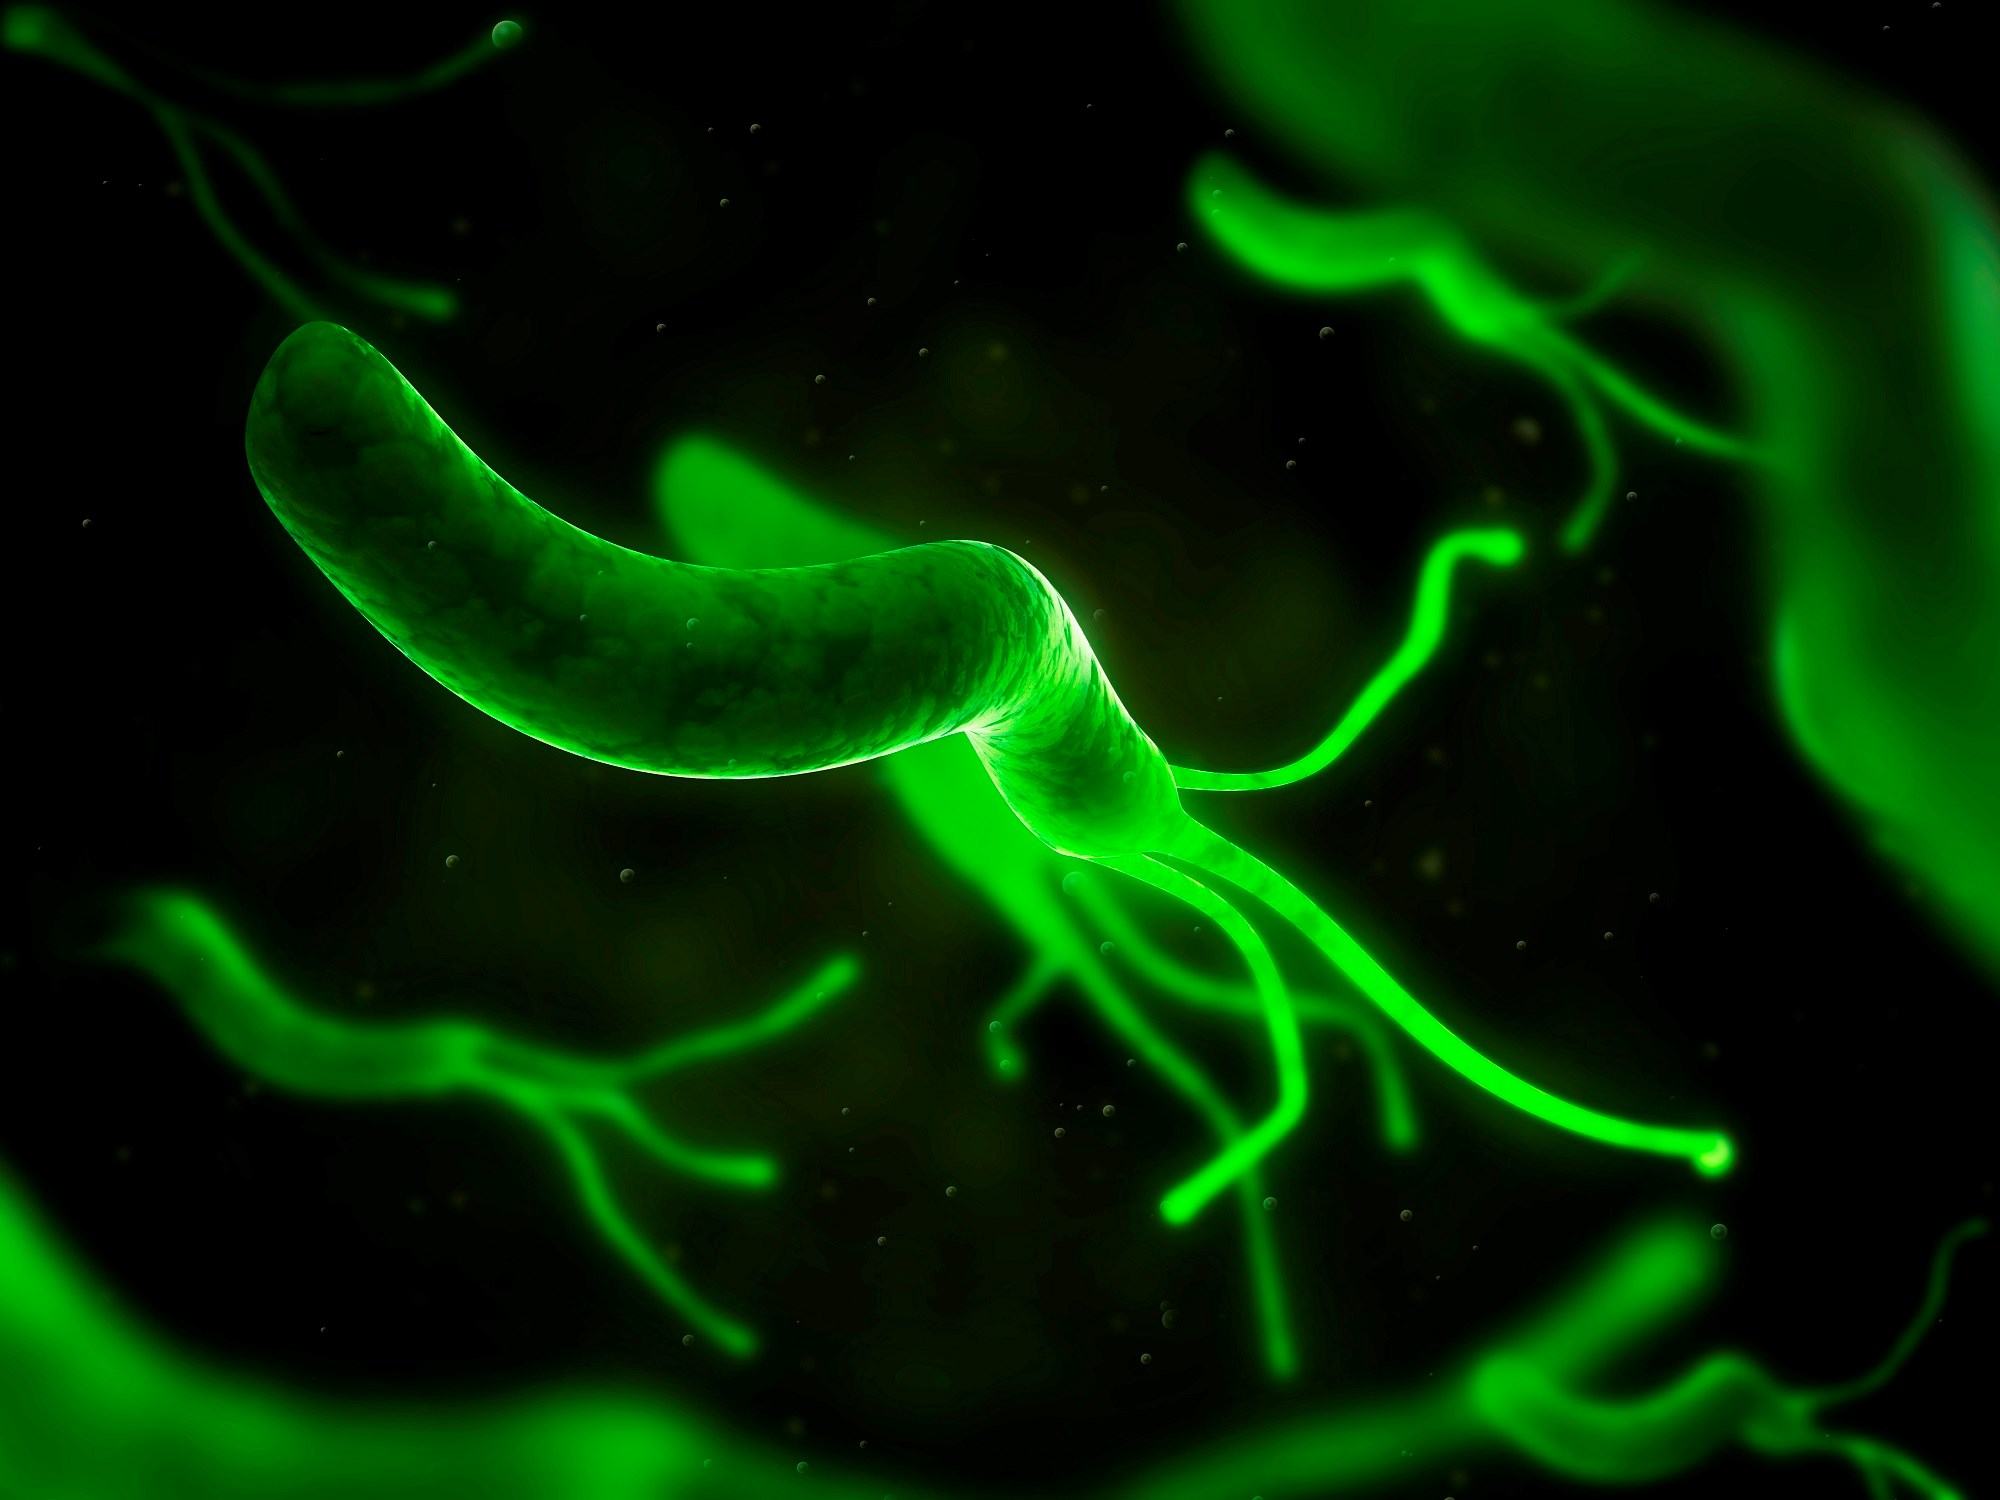 Eliminating H Pylori Infection May Benefit Adults With Immune Thrombocytopenic Purpura